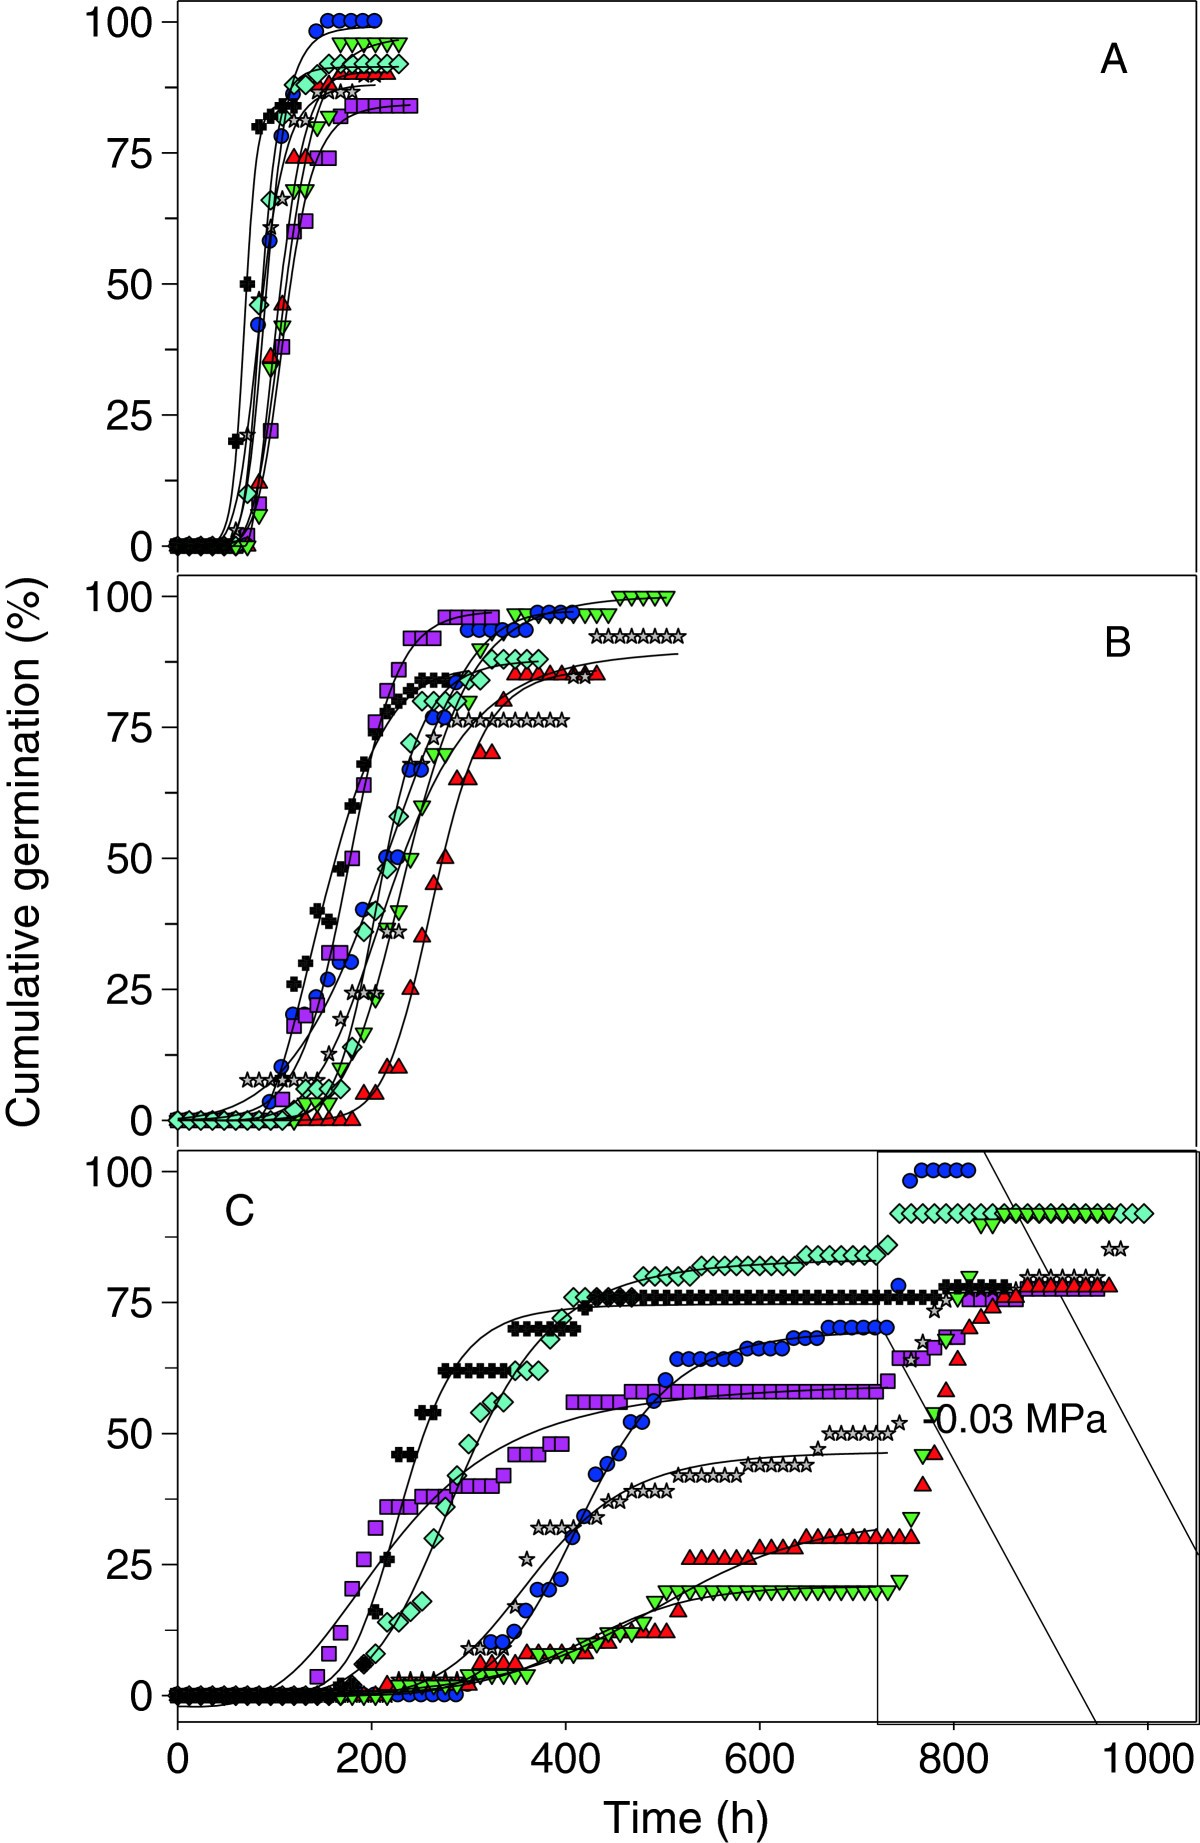 Seed Germination Of Agave Species As Influenced By Substrate Water Diagram Related Keywords Figure 3 Time Course Cumulative Spp Seeds